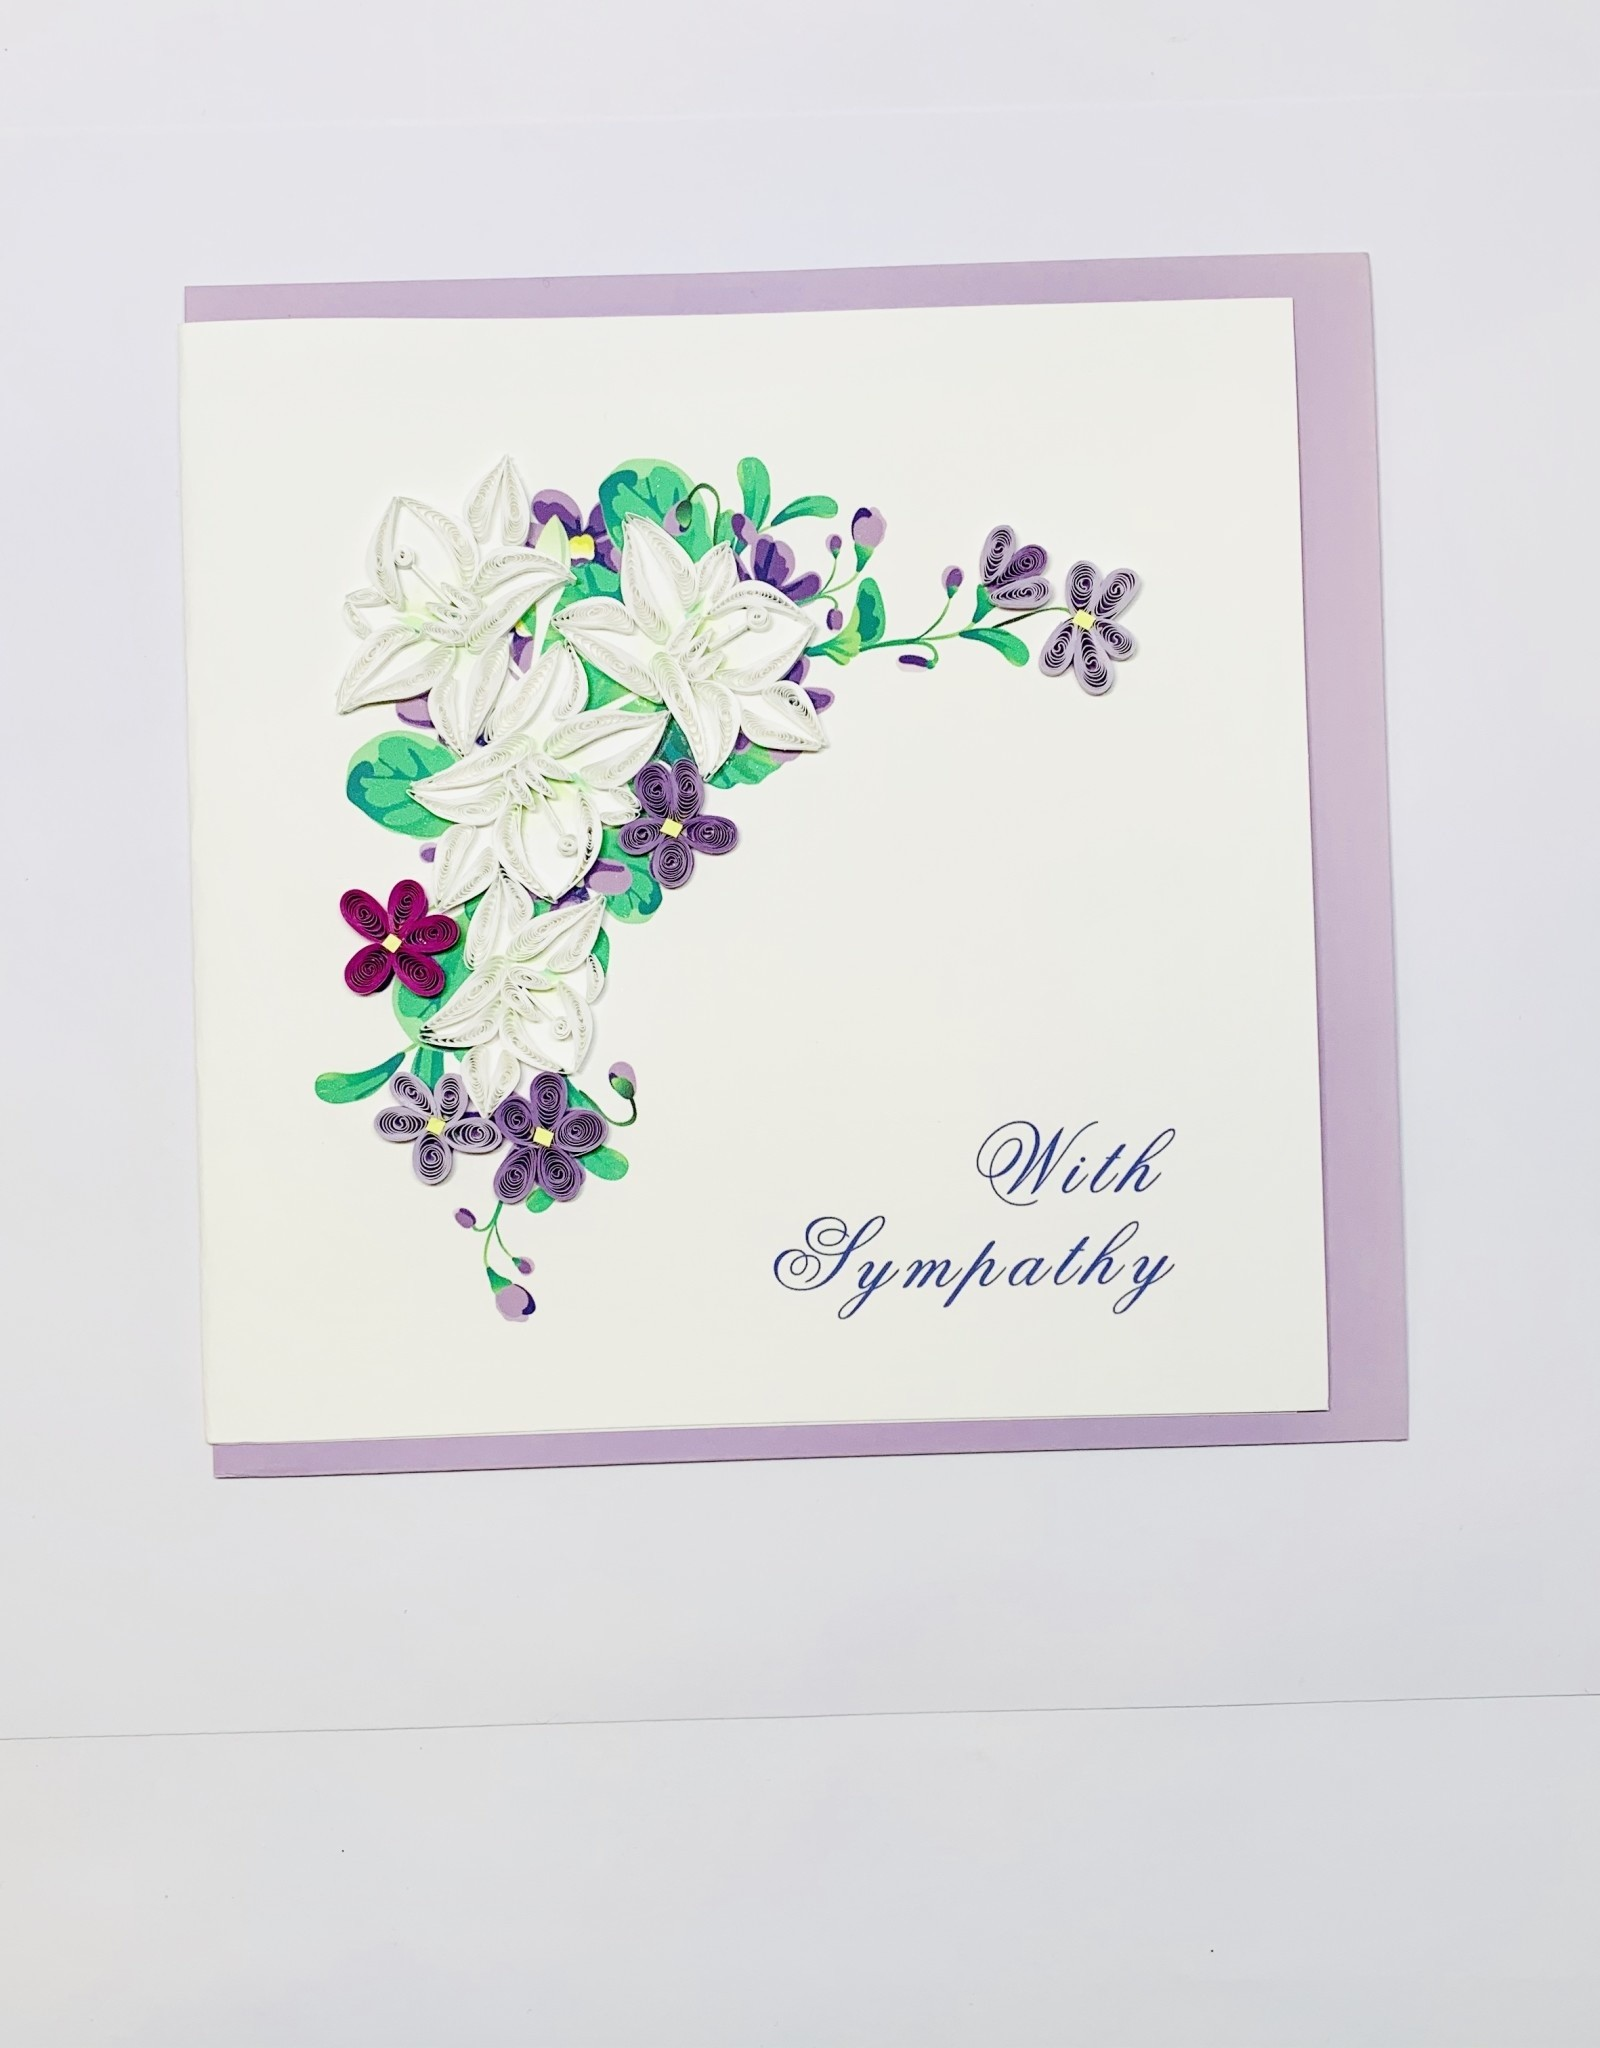 Quilling Sympathy White & Purple Flowers